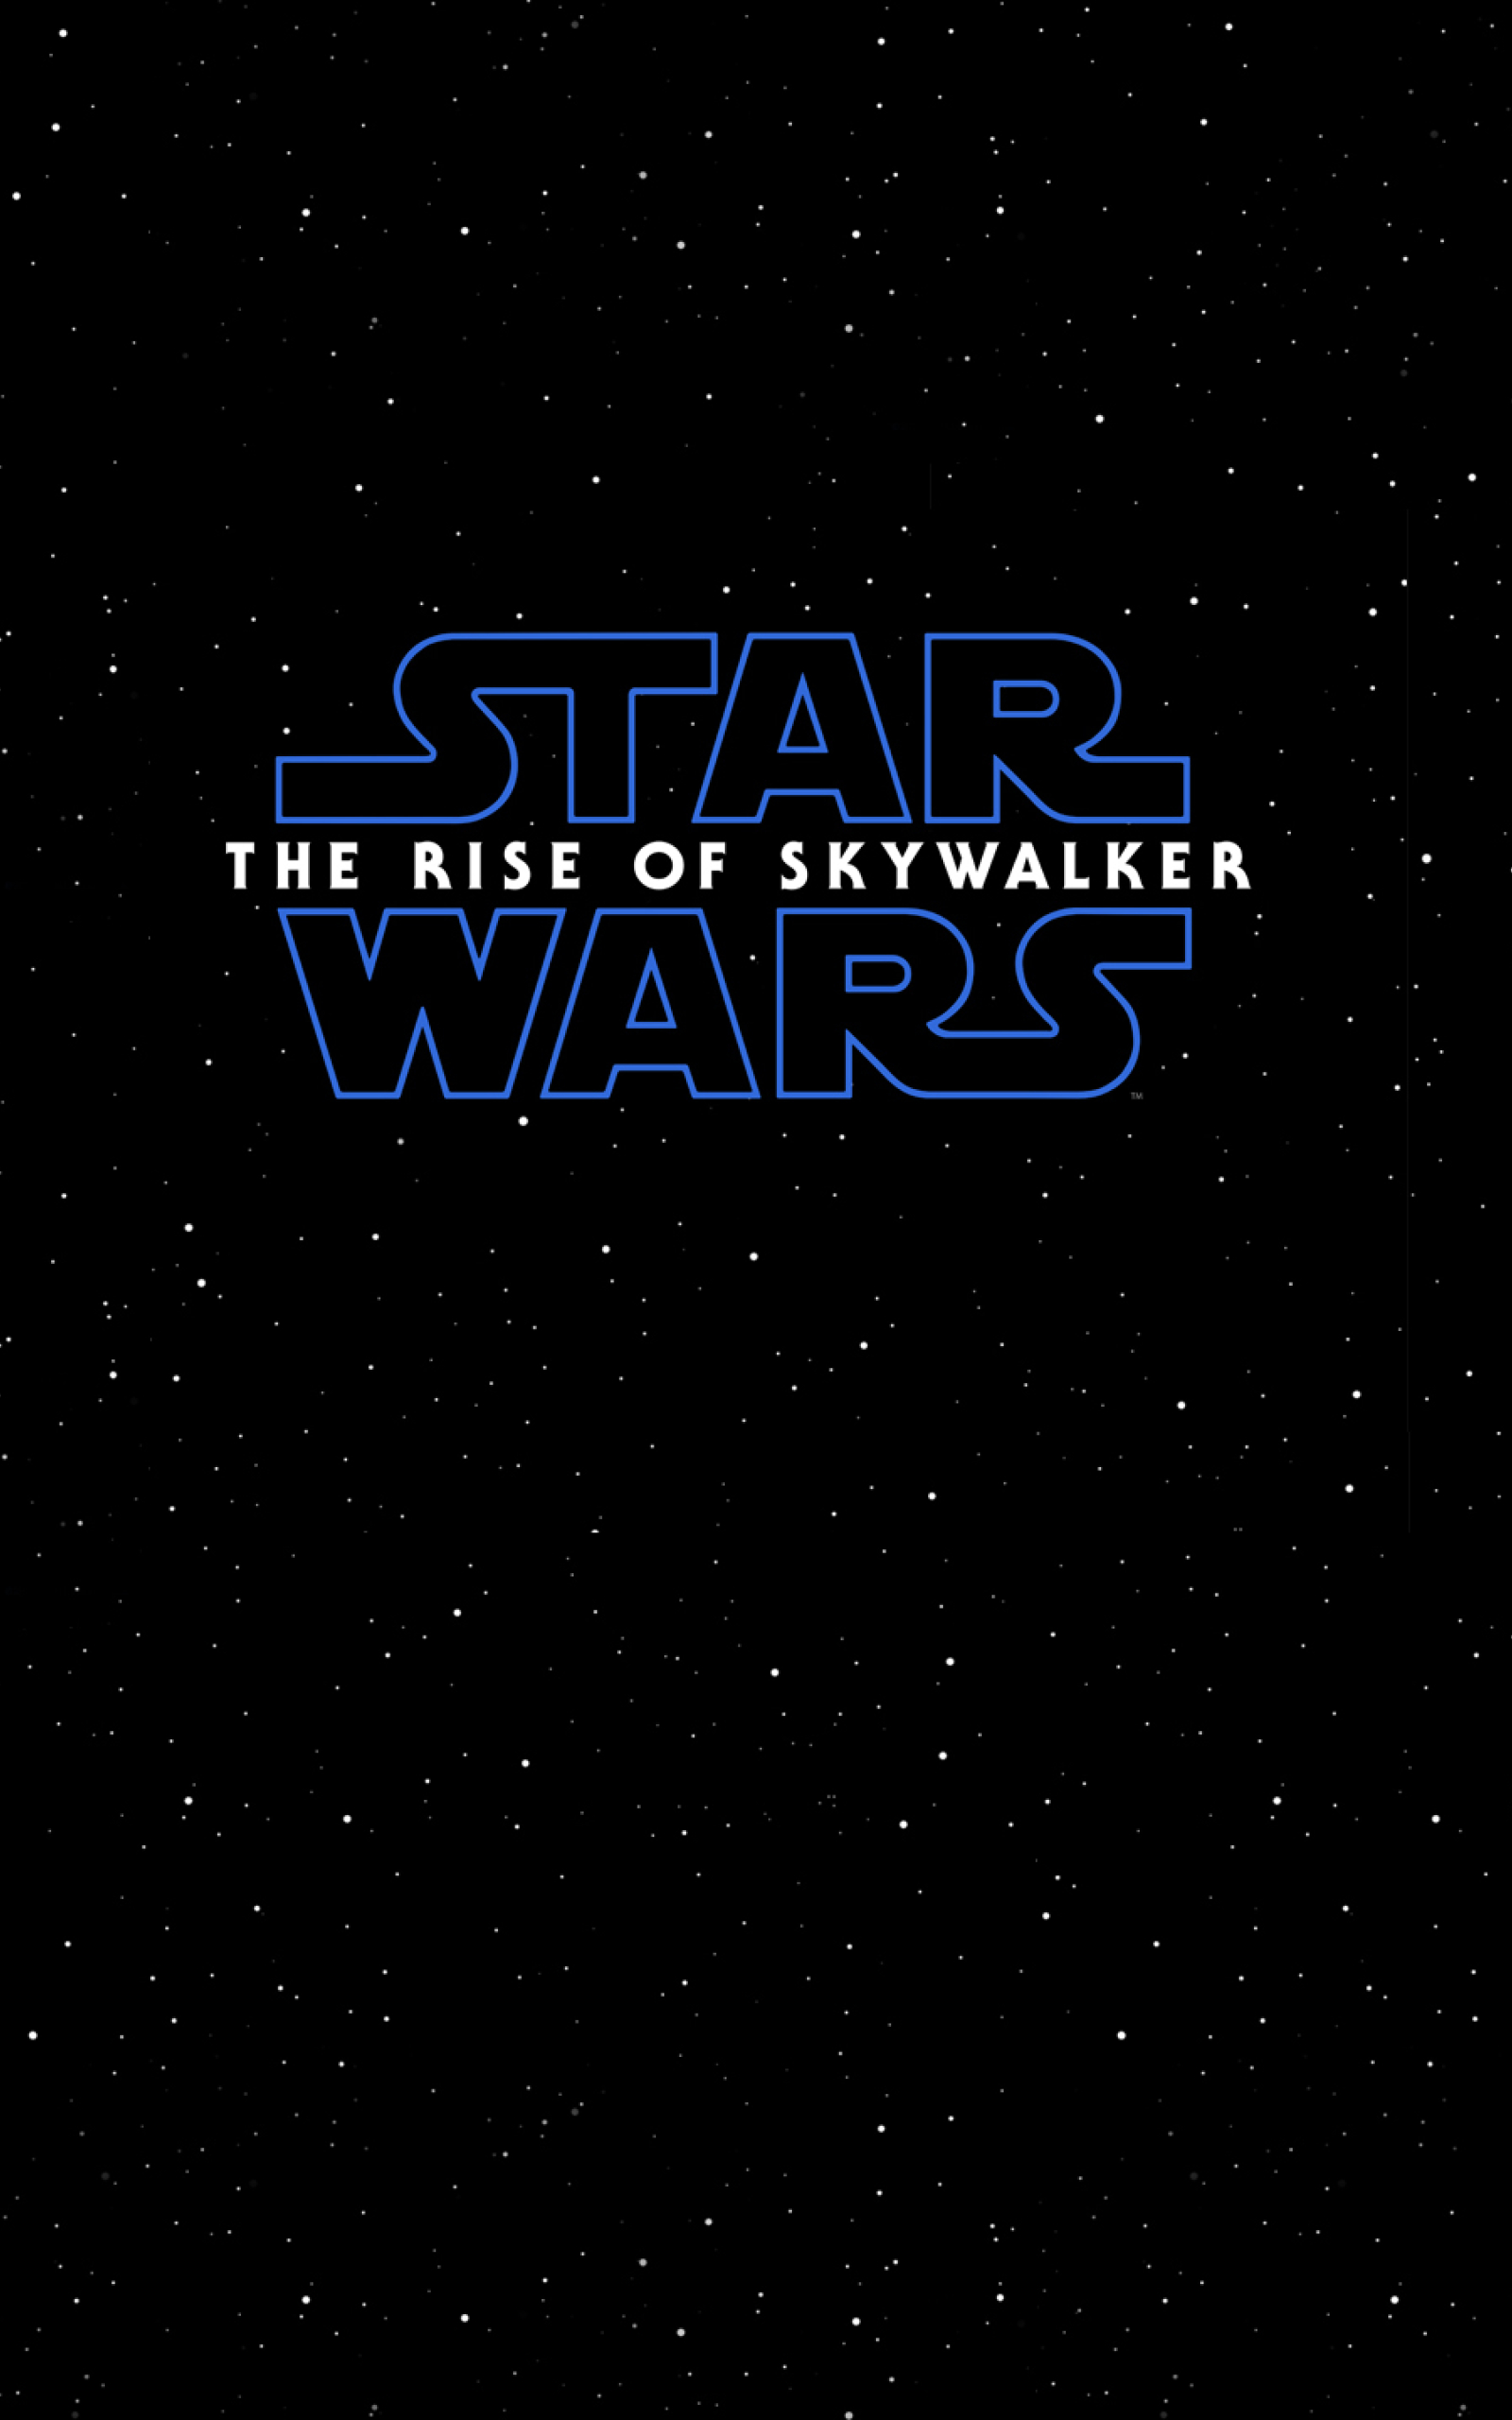 1600x2560 Star Wars The Rise Of Skywalker Poster 1600x2560 Resolution Wallpaper Hd Movies 4k Wallpapers Images Photos And Background